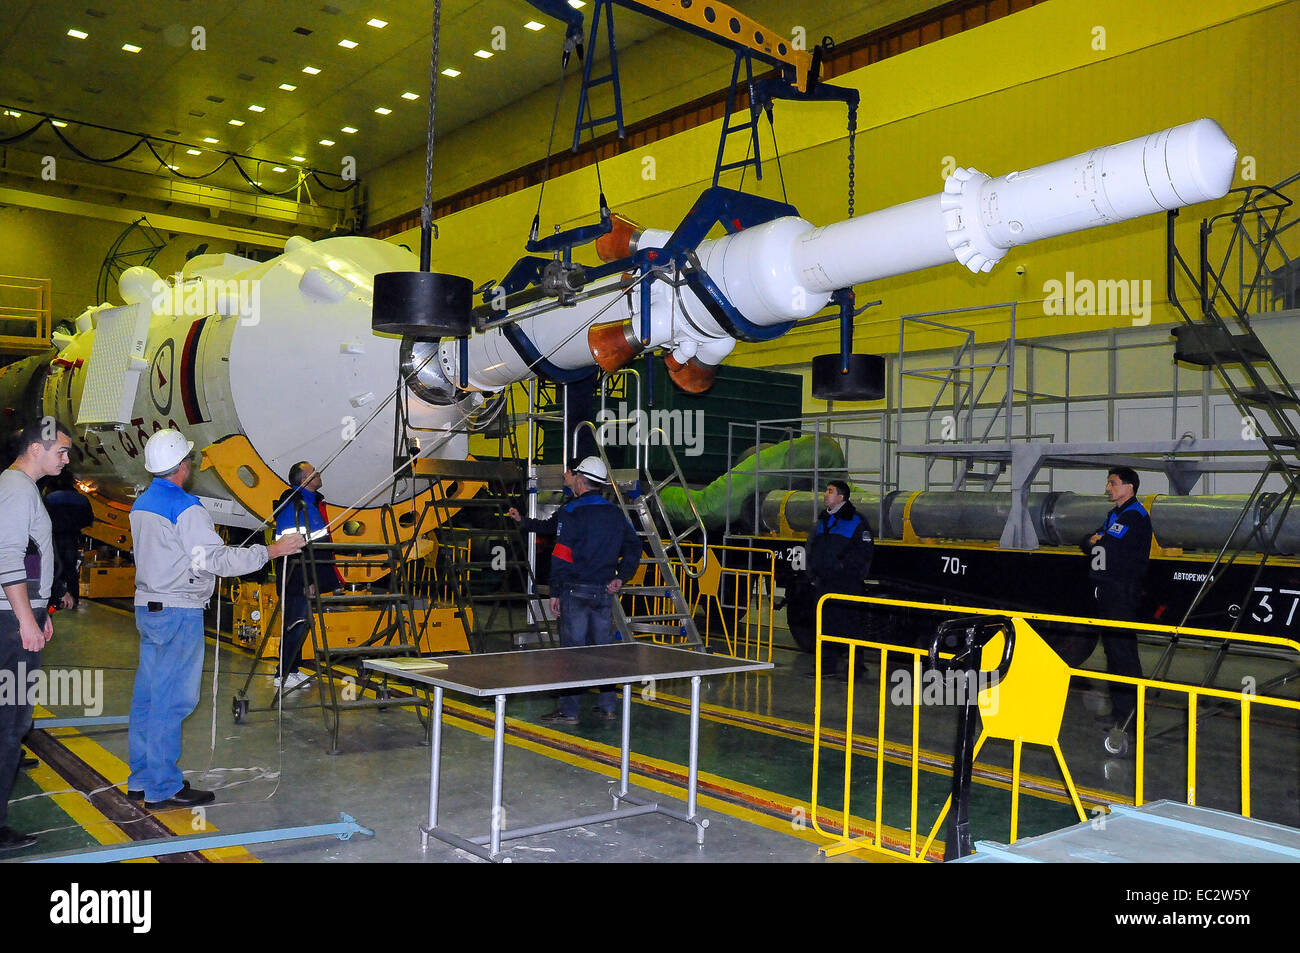 The Soyuz rocket and Soyuz TMA-15M spacecraft is assembled at the Baikonur Cosmodrome on Thursday, Nov. 20, 2014, - Stock Image